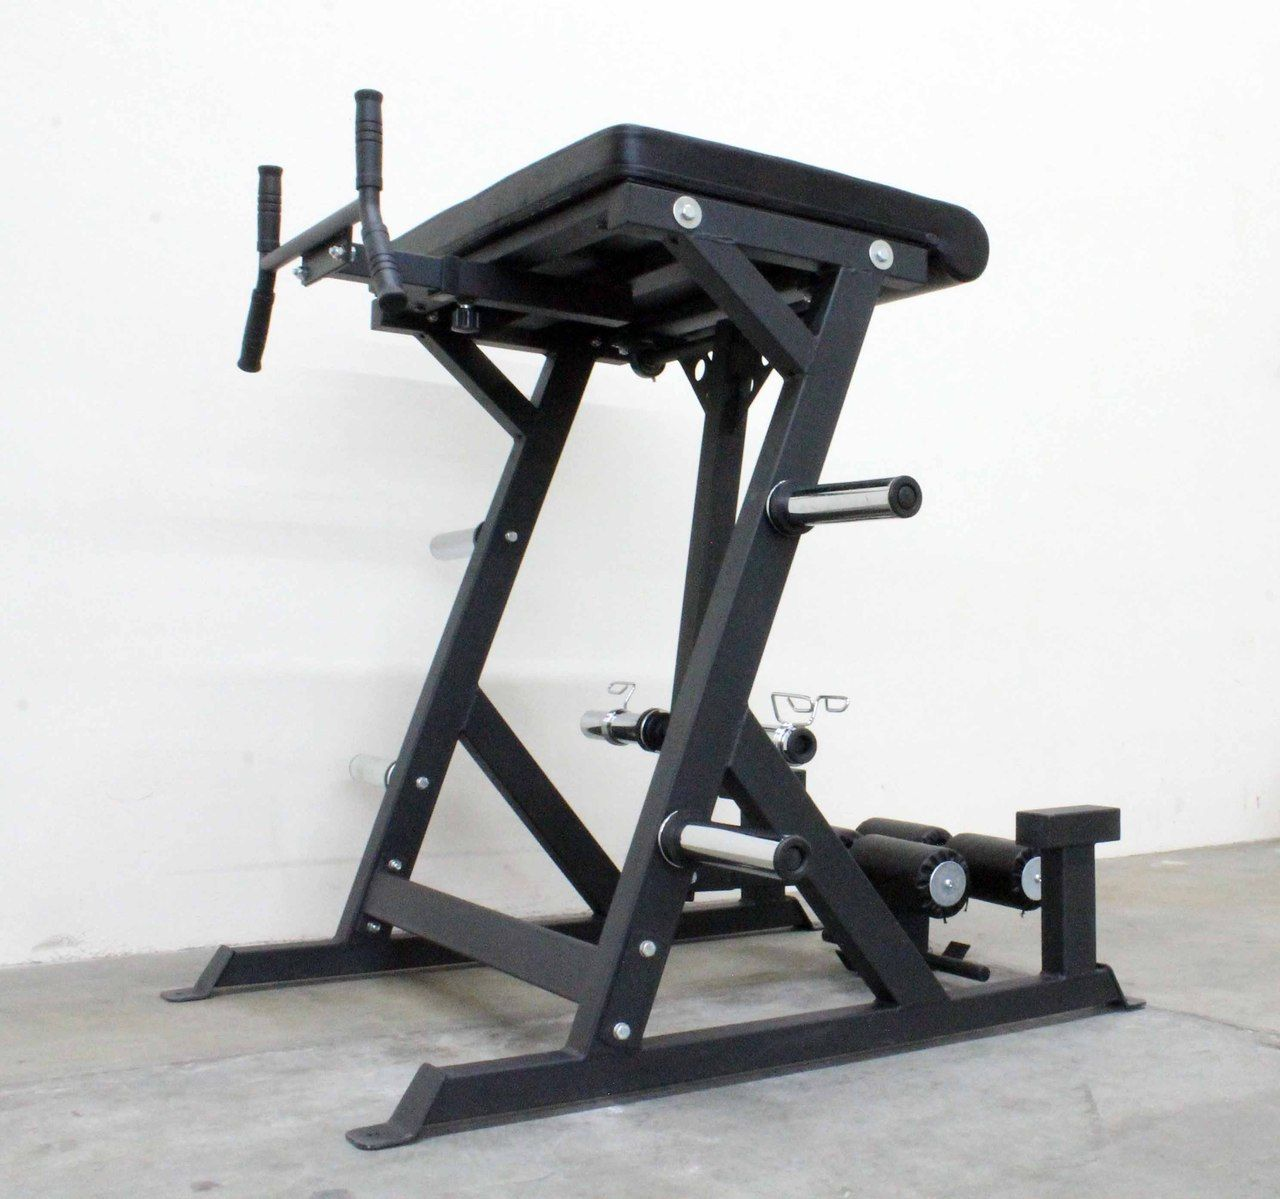 Commercial reverse hyper extension machine for crossfit